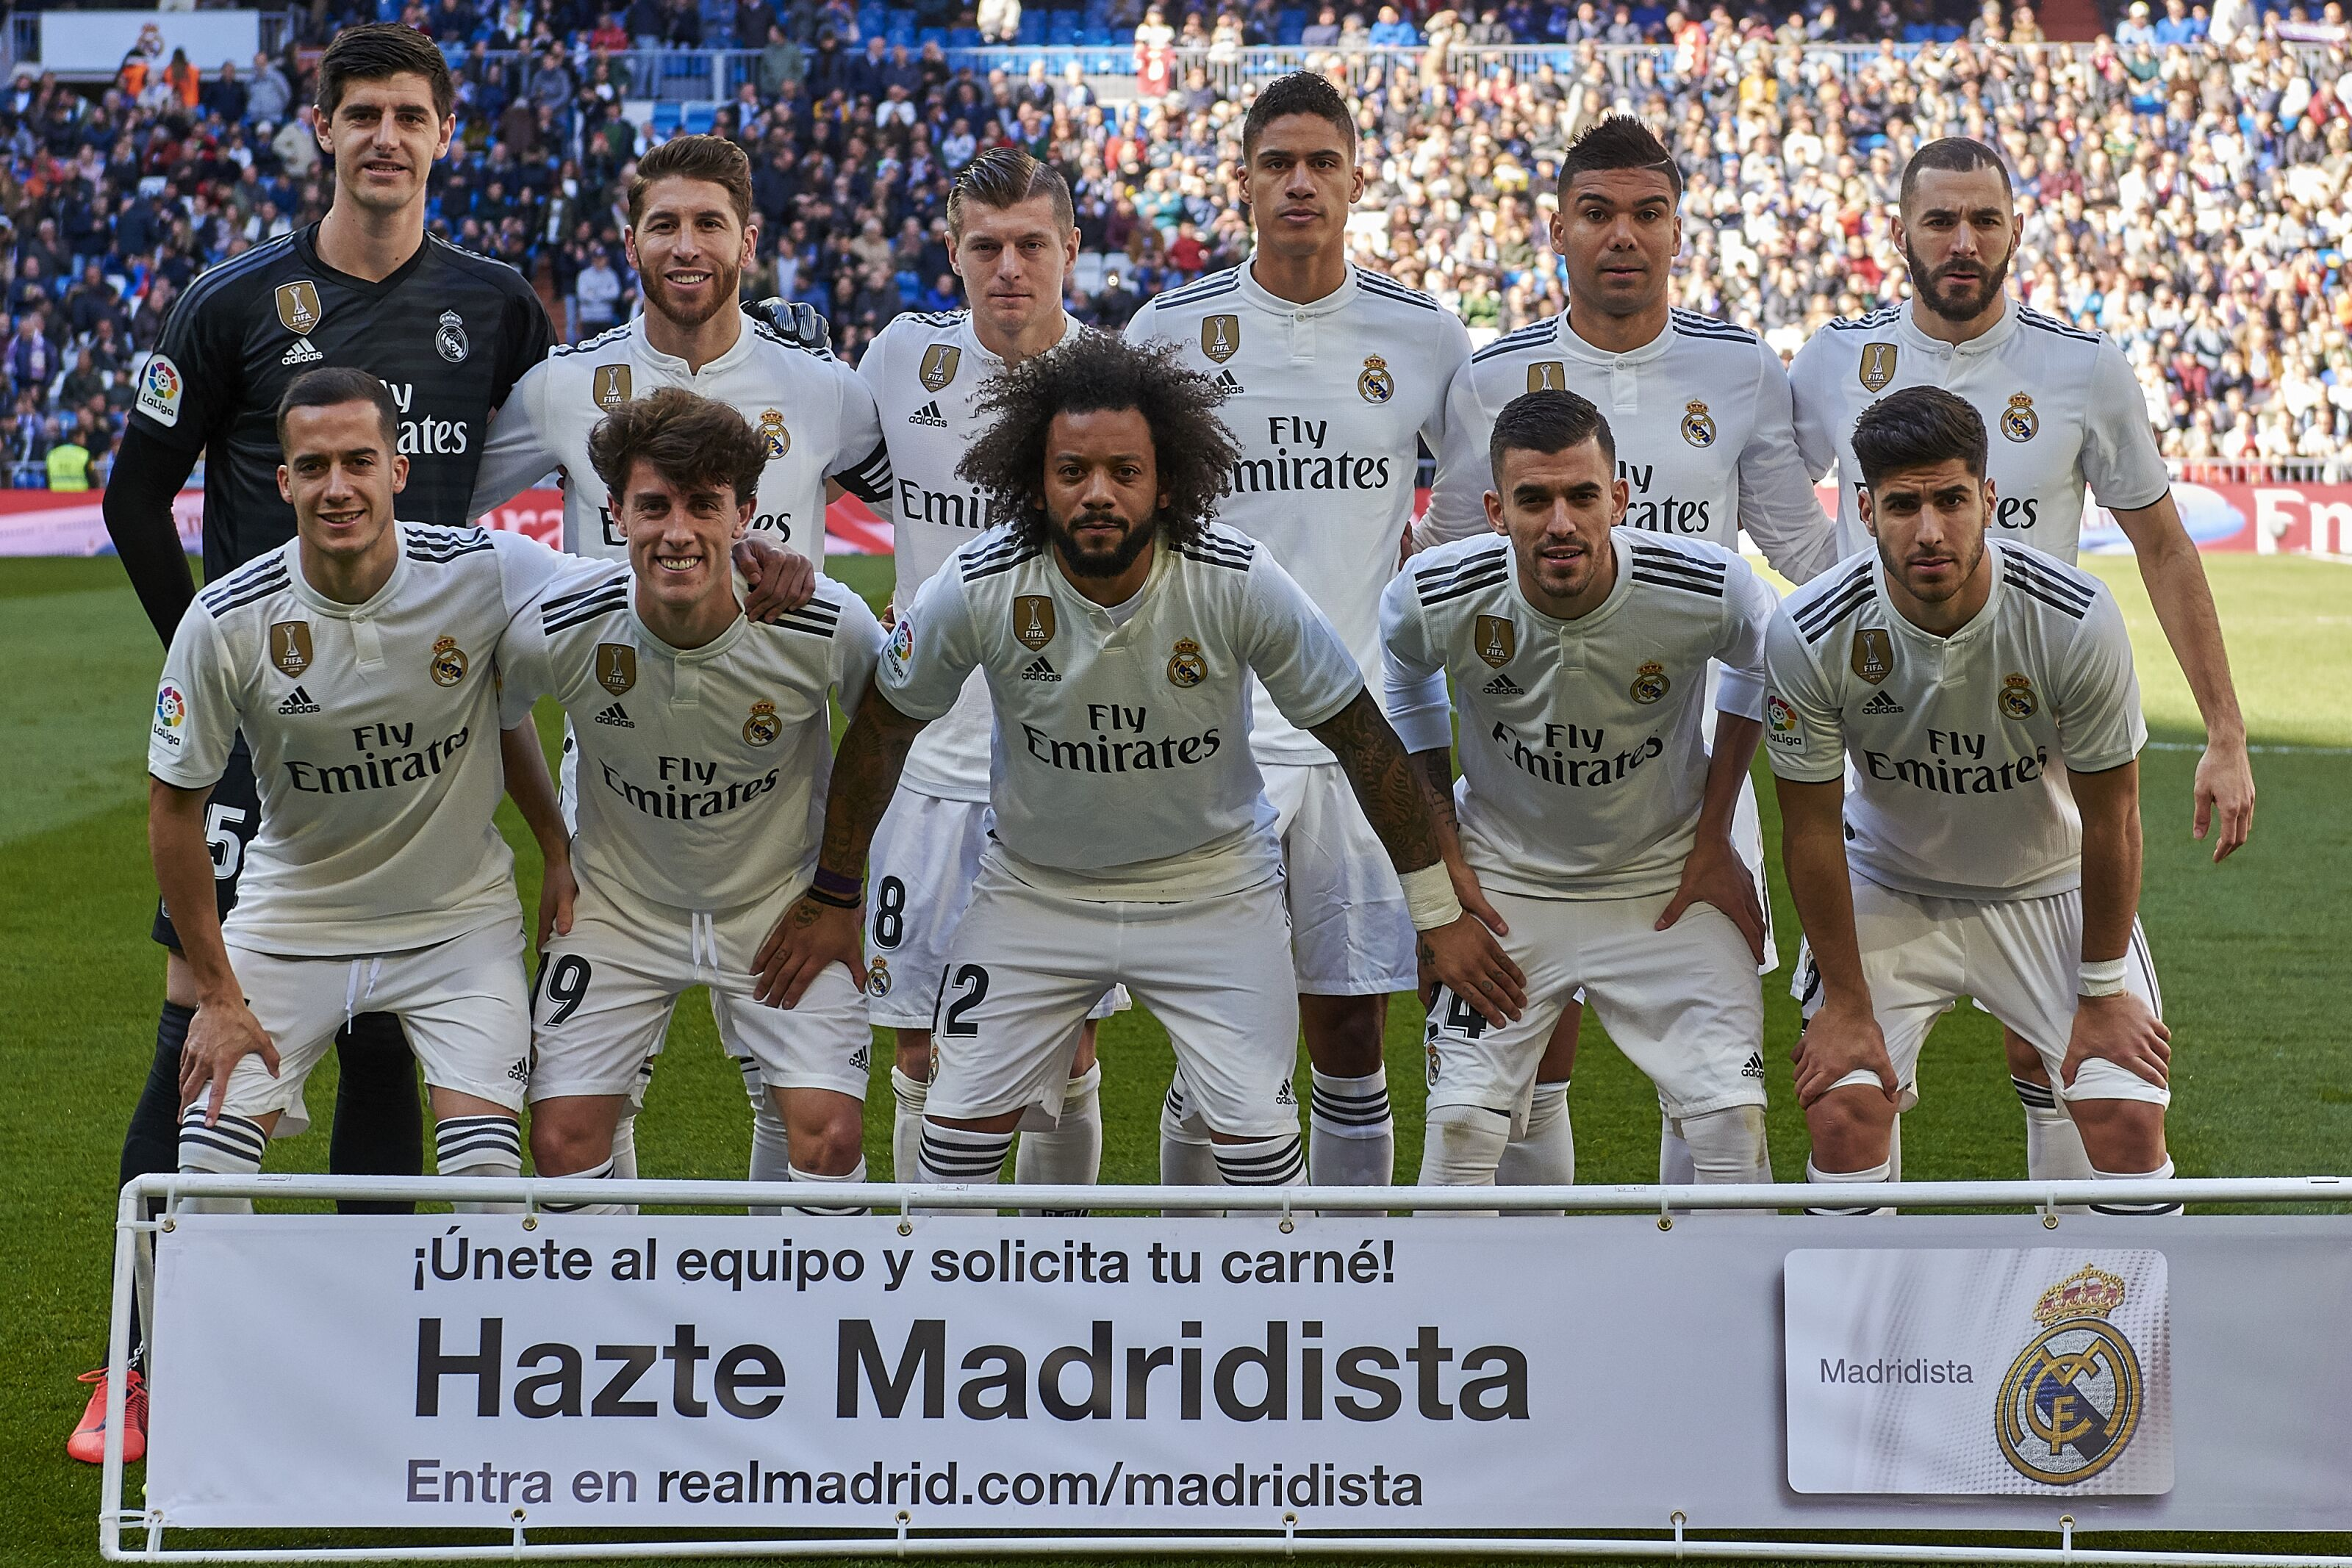 e4186159481 10 comforting facts about Real Madrid every fan needs to know